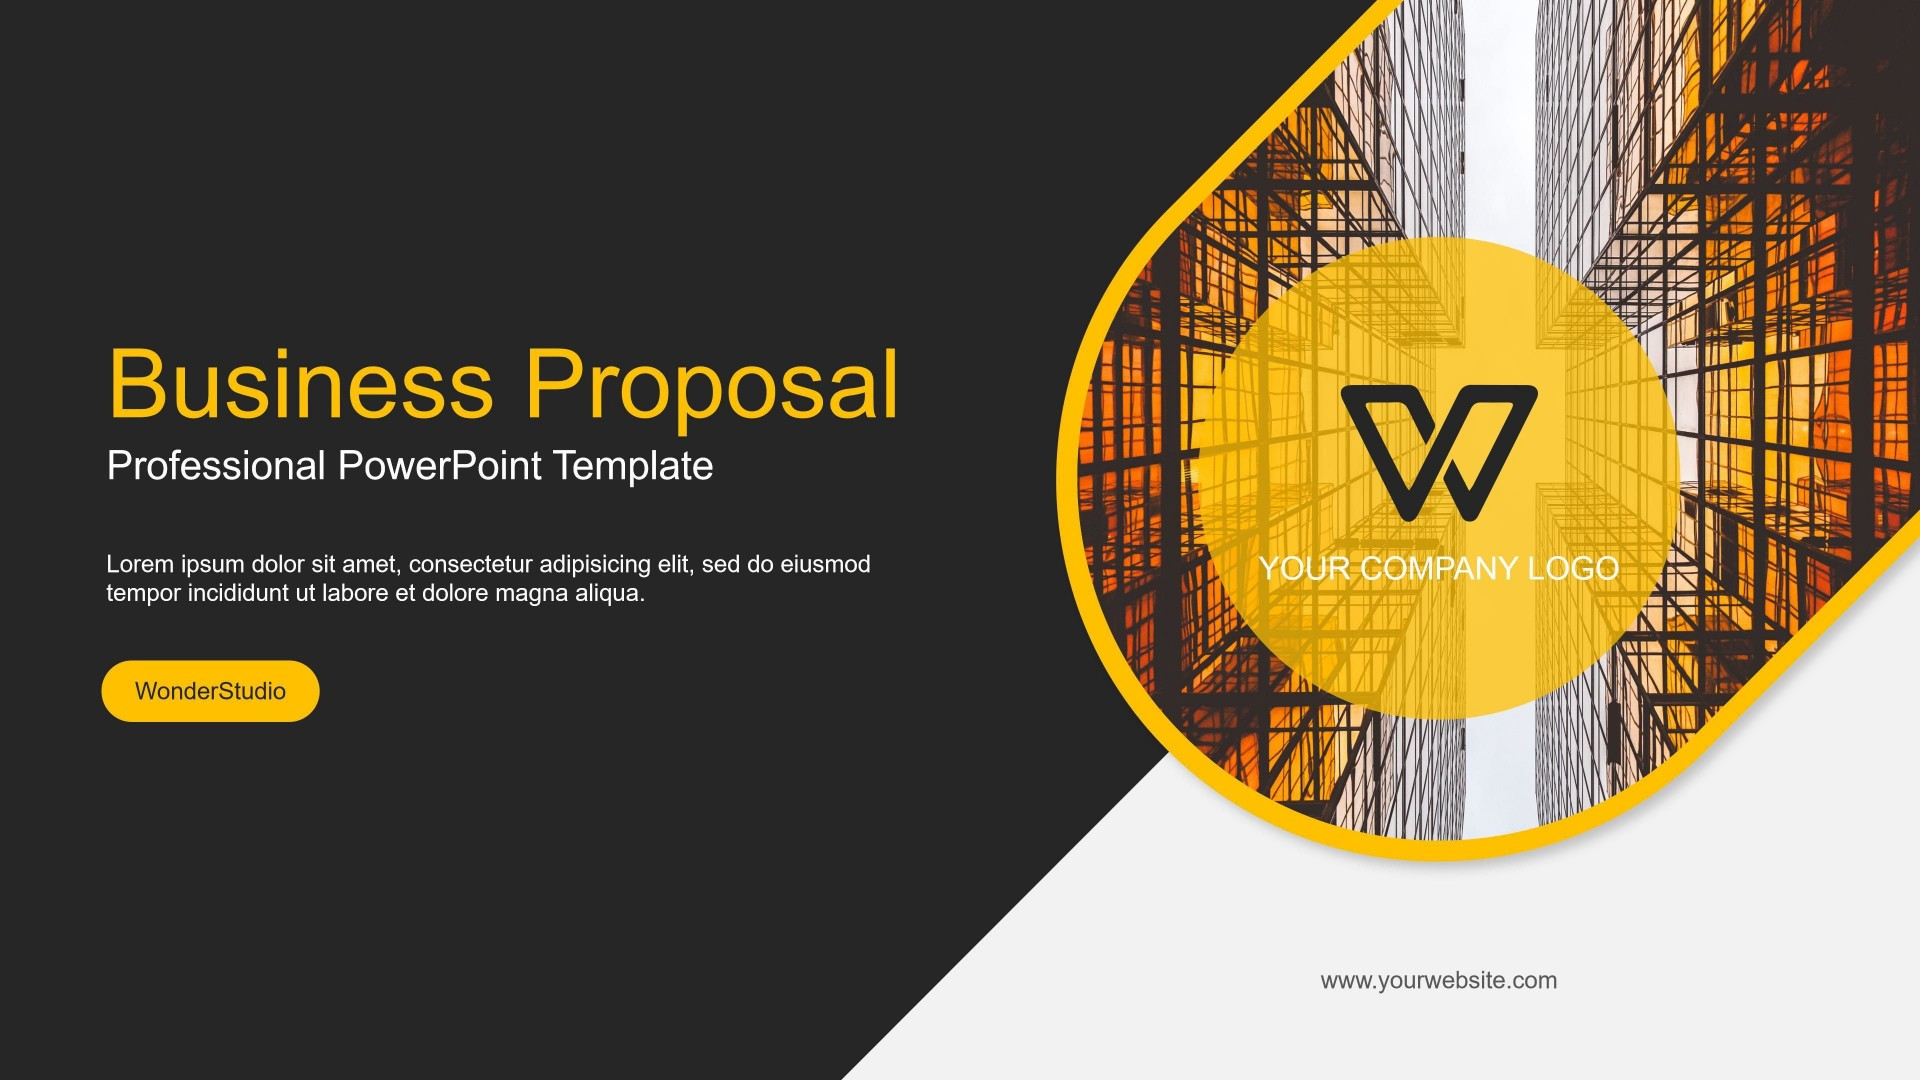 004 Top Professional Ppt Template Free Download Example  For Project Presentation Powerpoint Thesi1920